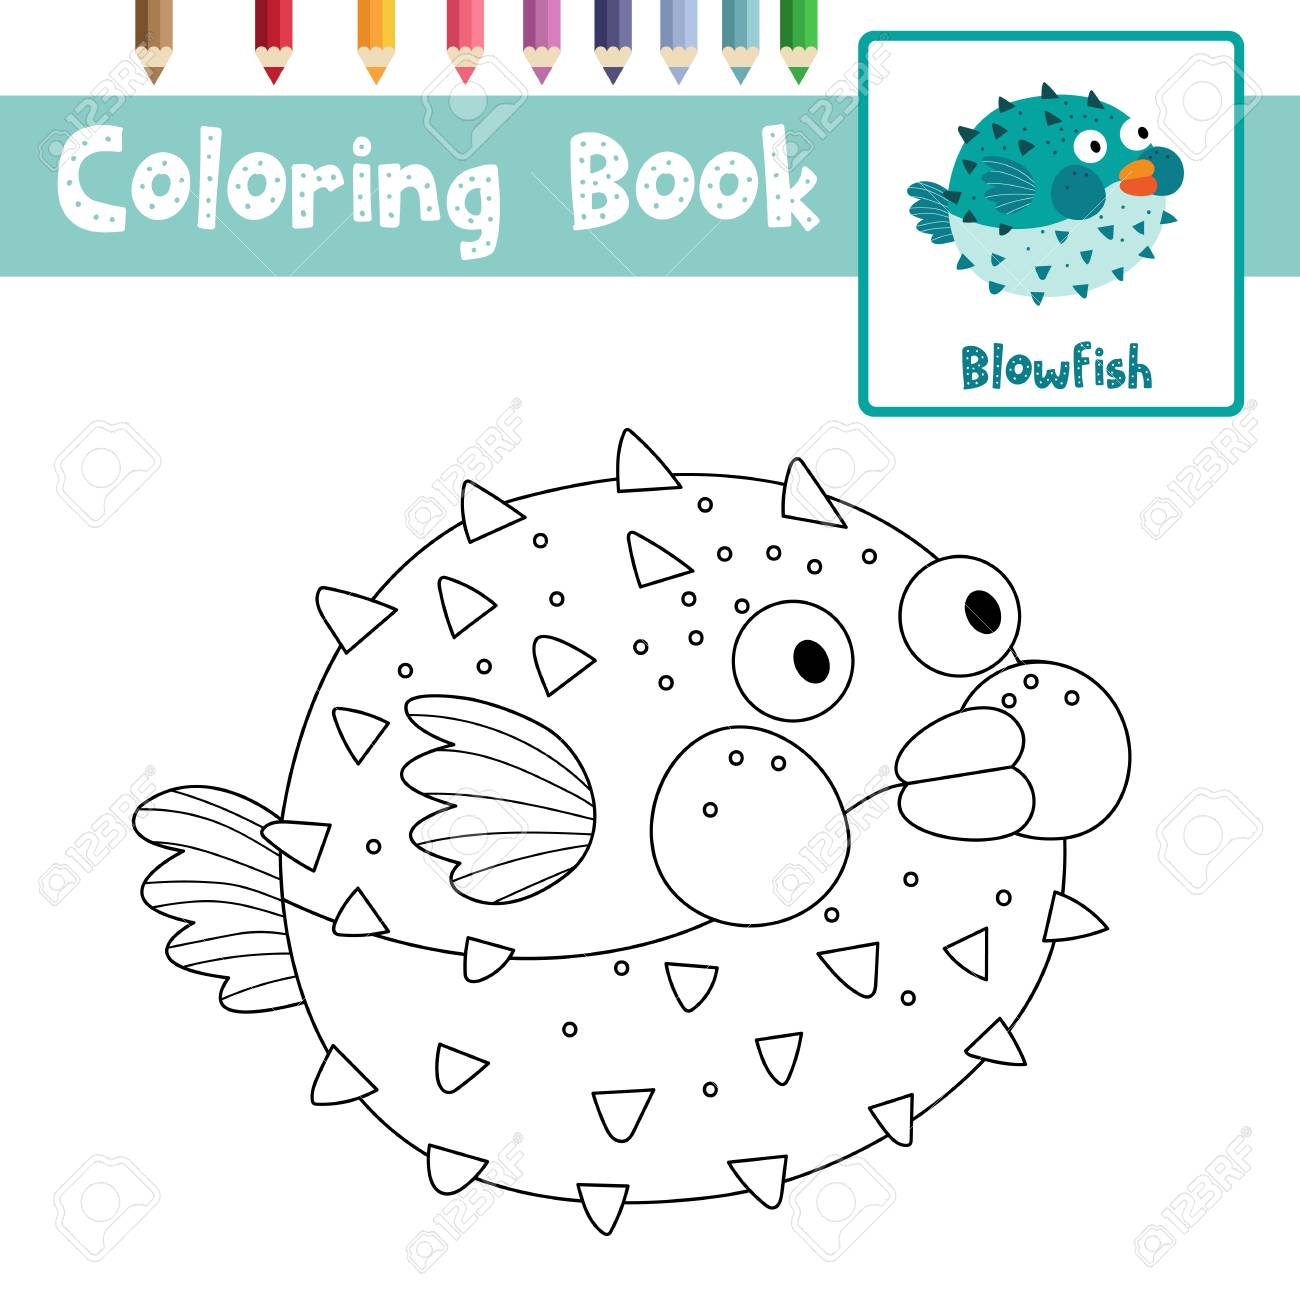 Coloring Page Of Blowfish Animals For Preschool Kids Activity Educational  Worksheet. Vector Illustration. Stock